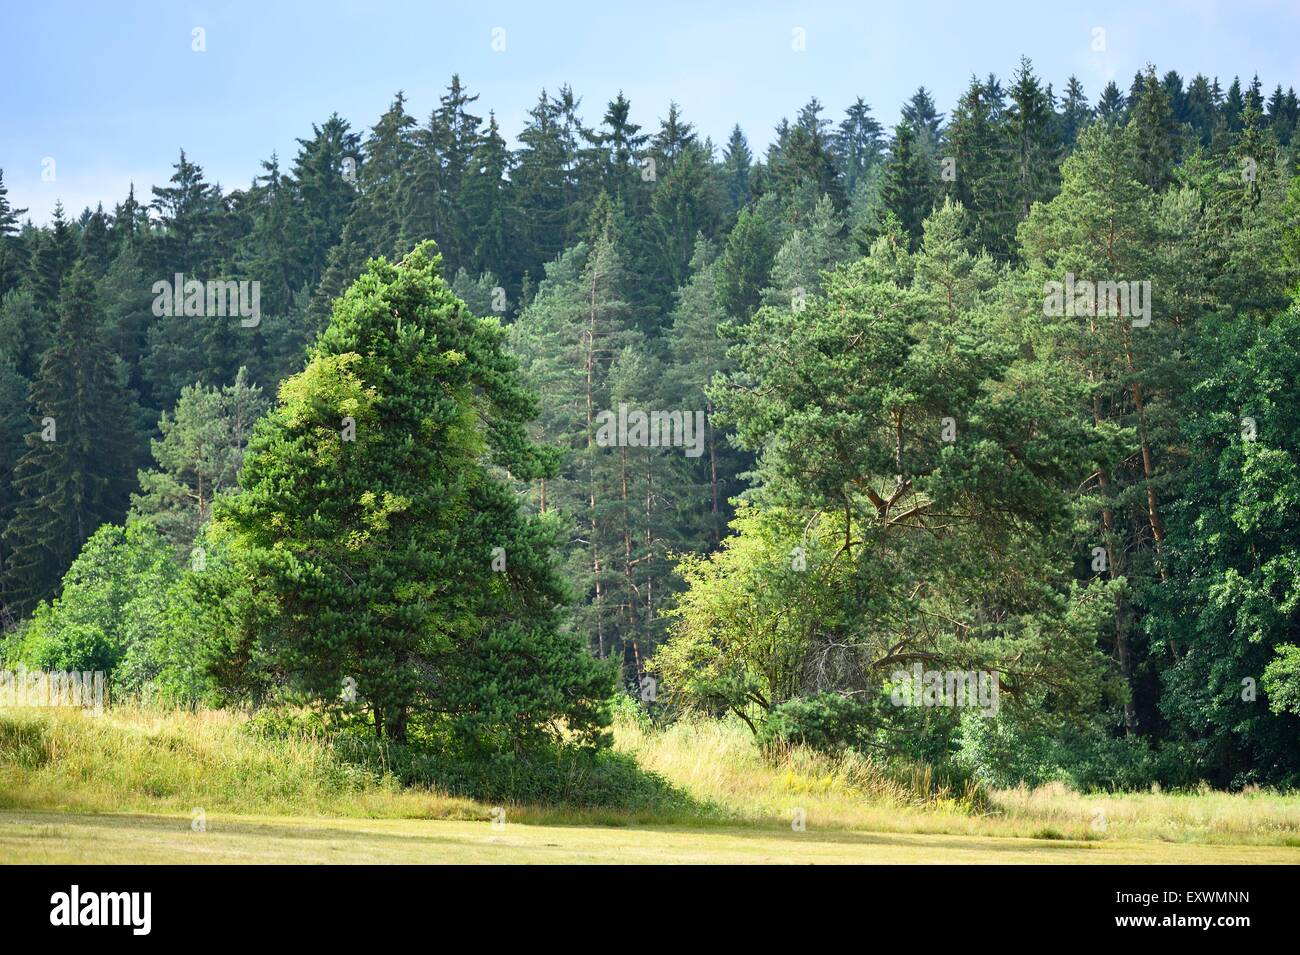 Scots pine tree on a meadow beside forest, Bavaria, Germany - Stock Image